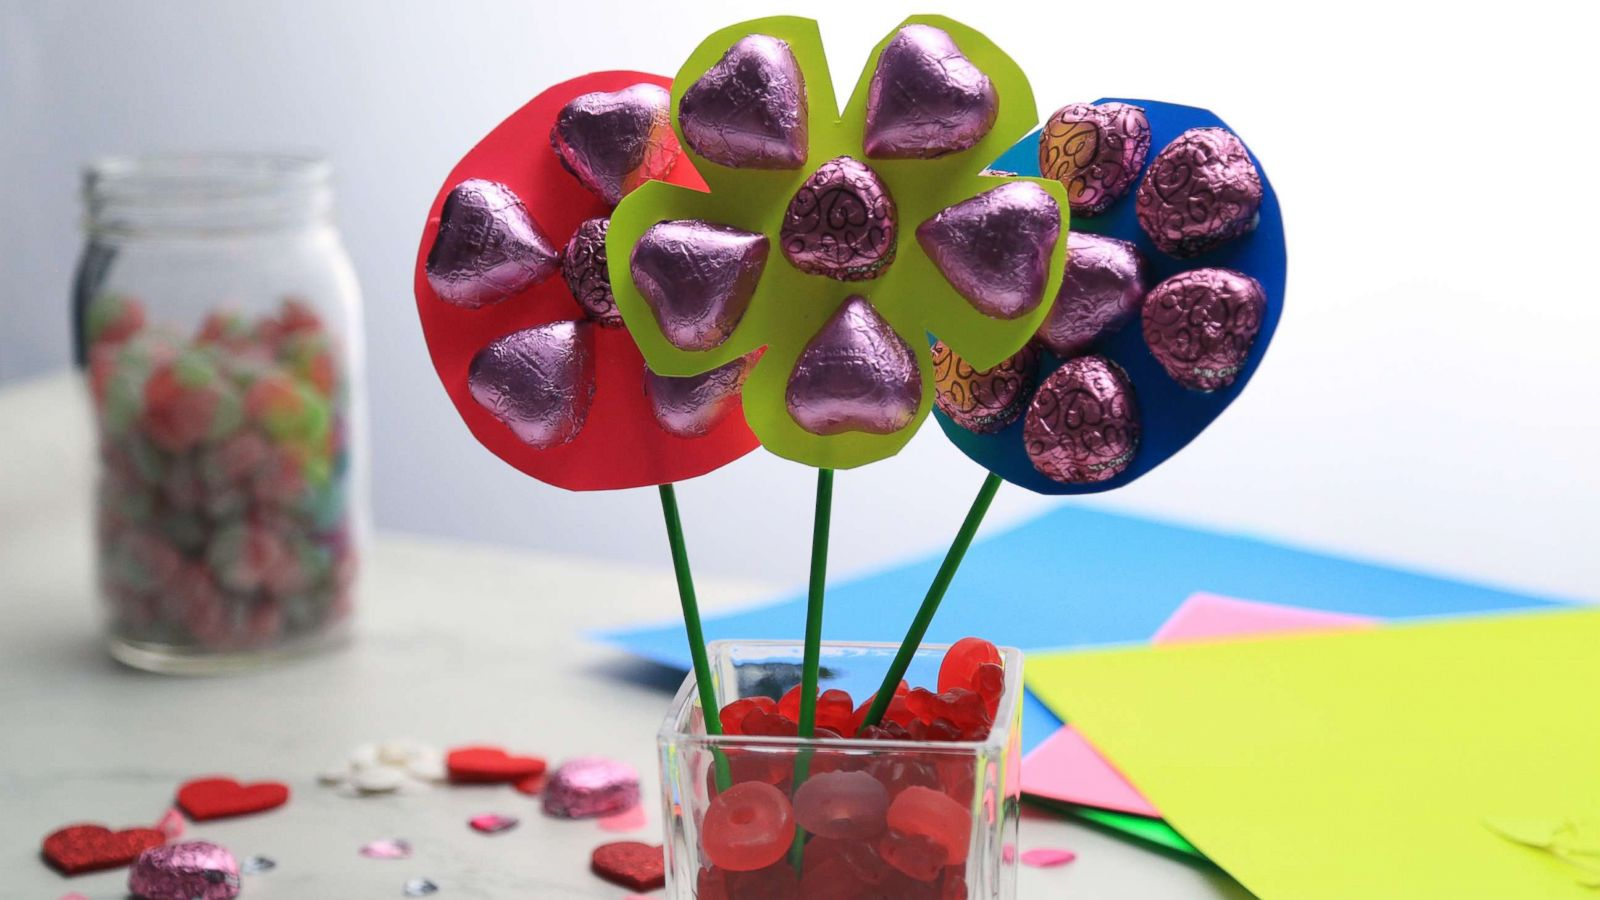 This Diy Chocolate Bouquet Is The Perfect Valentine S Day Gift For Your Sweetie Abc News